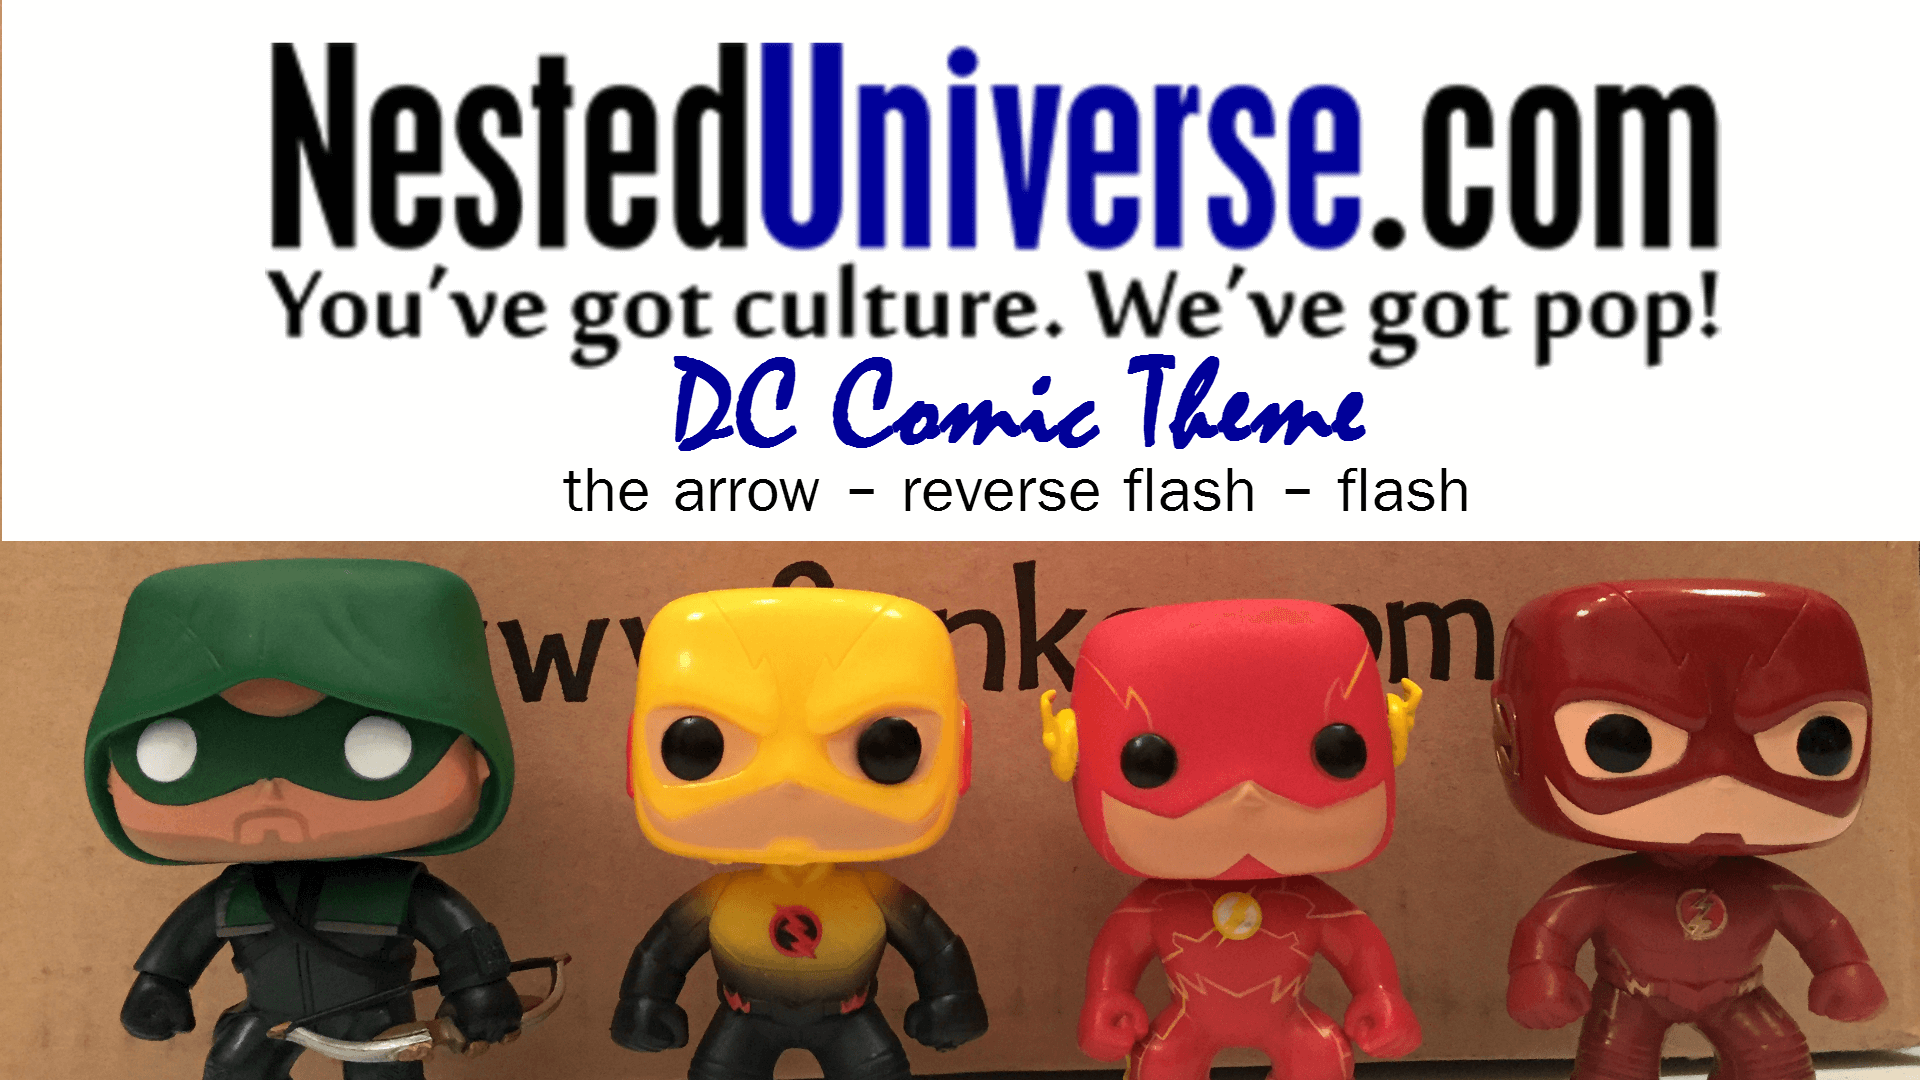 Nested Universe: They Have Pop!